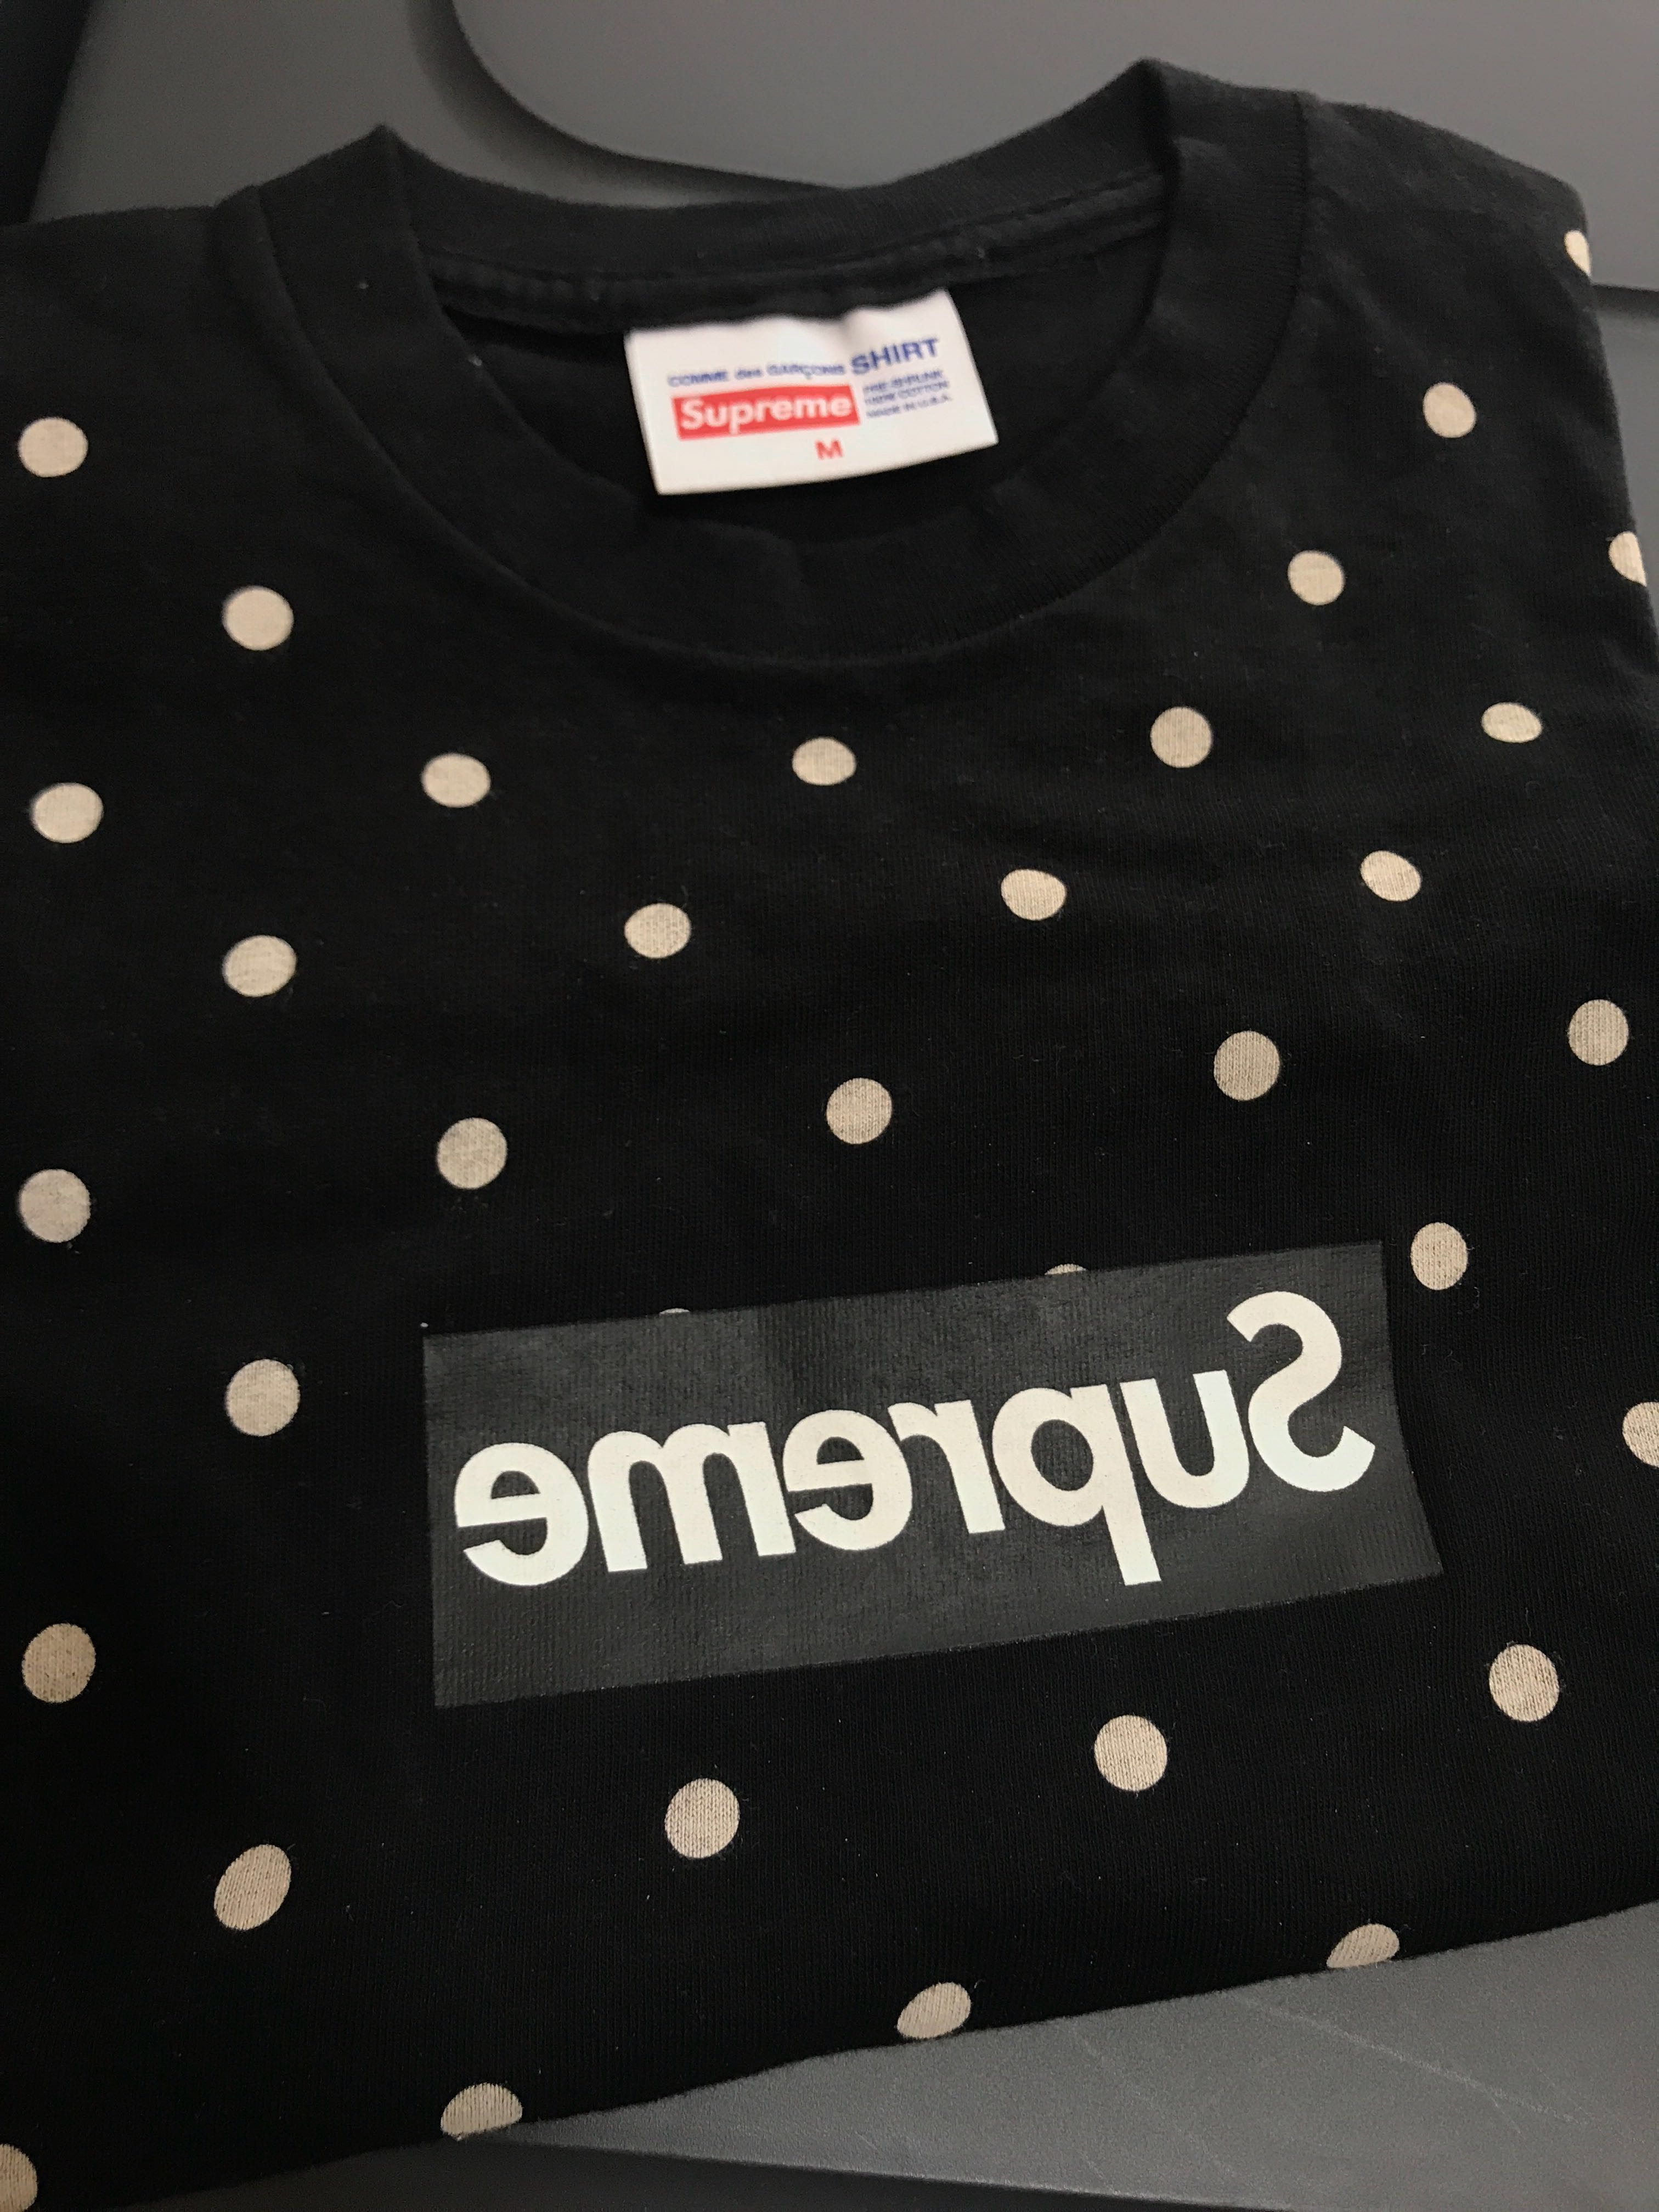 f913d816dc3d Supreme Comme des Garcons CDG 2012 Box Logo Black M Bogo, Men's Fashion,  Clothes, Tops on Carousell